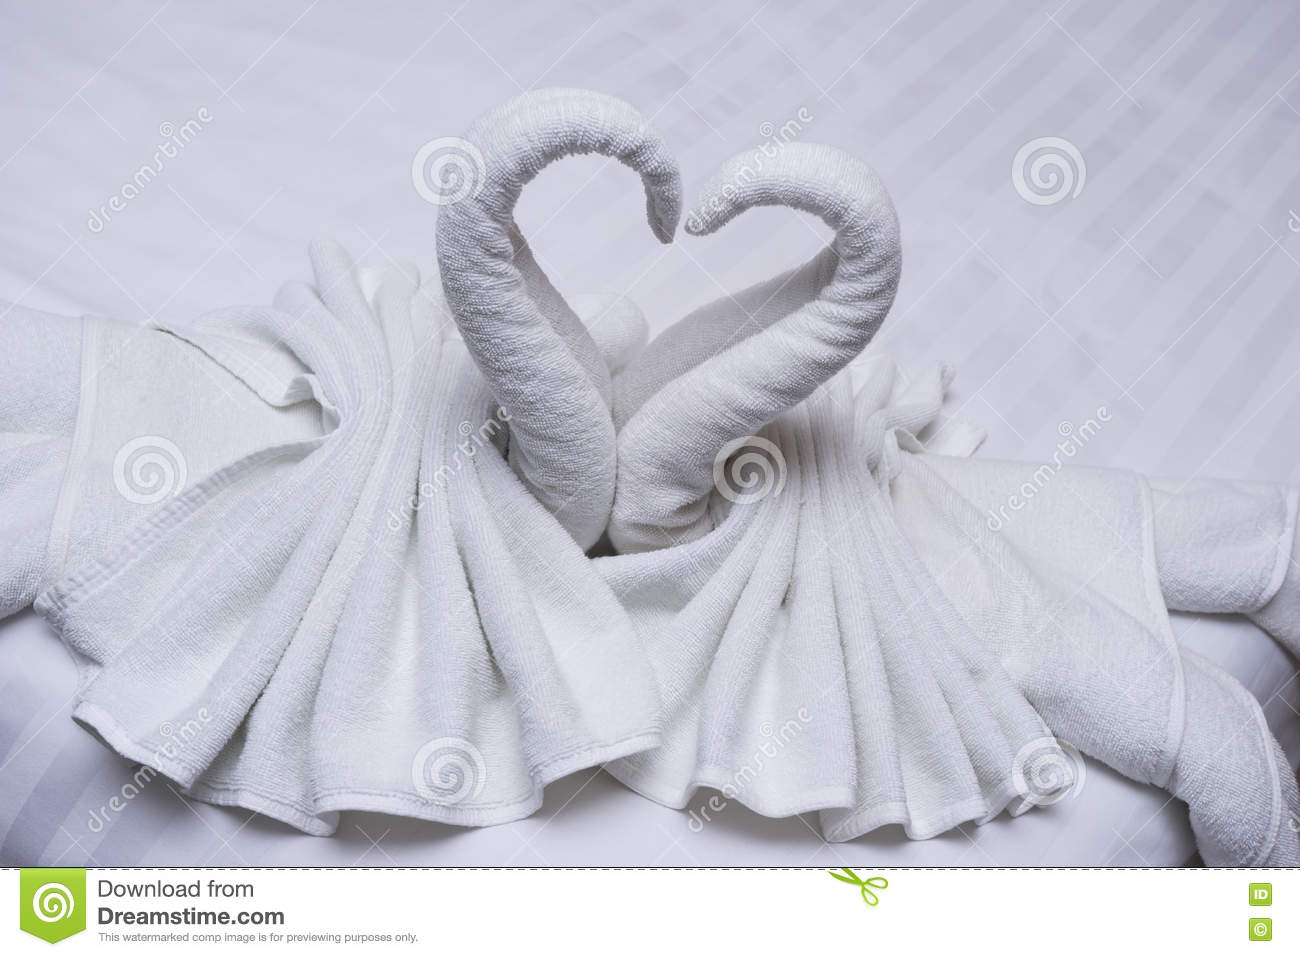 Swans Of Towels Royalty Free Stock Photography